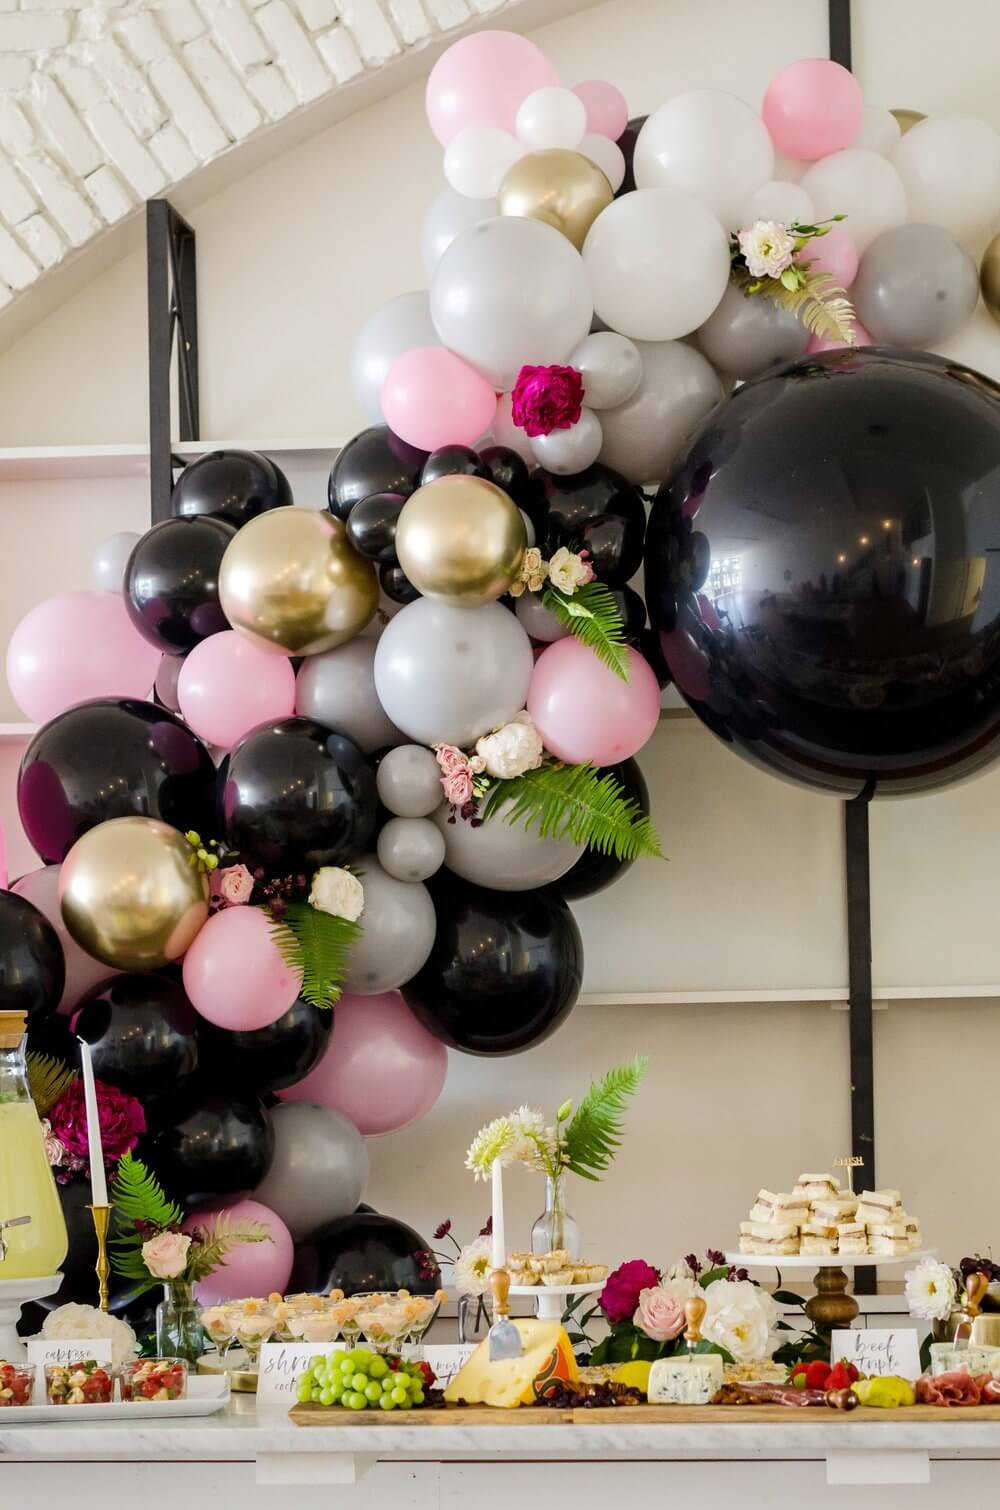 Amazing balloon garland idea